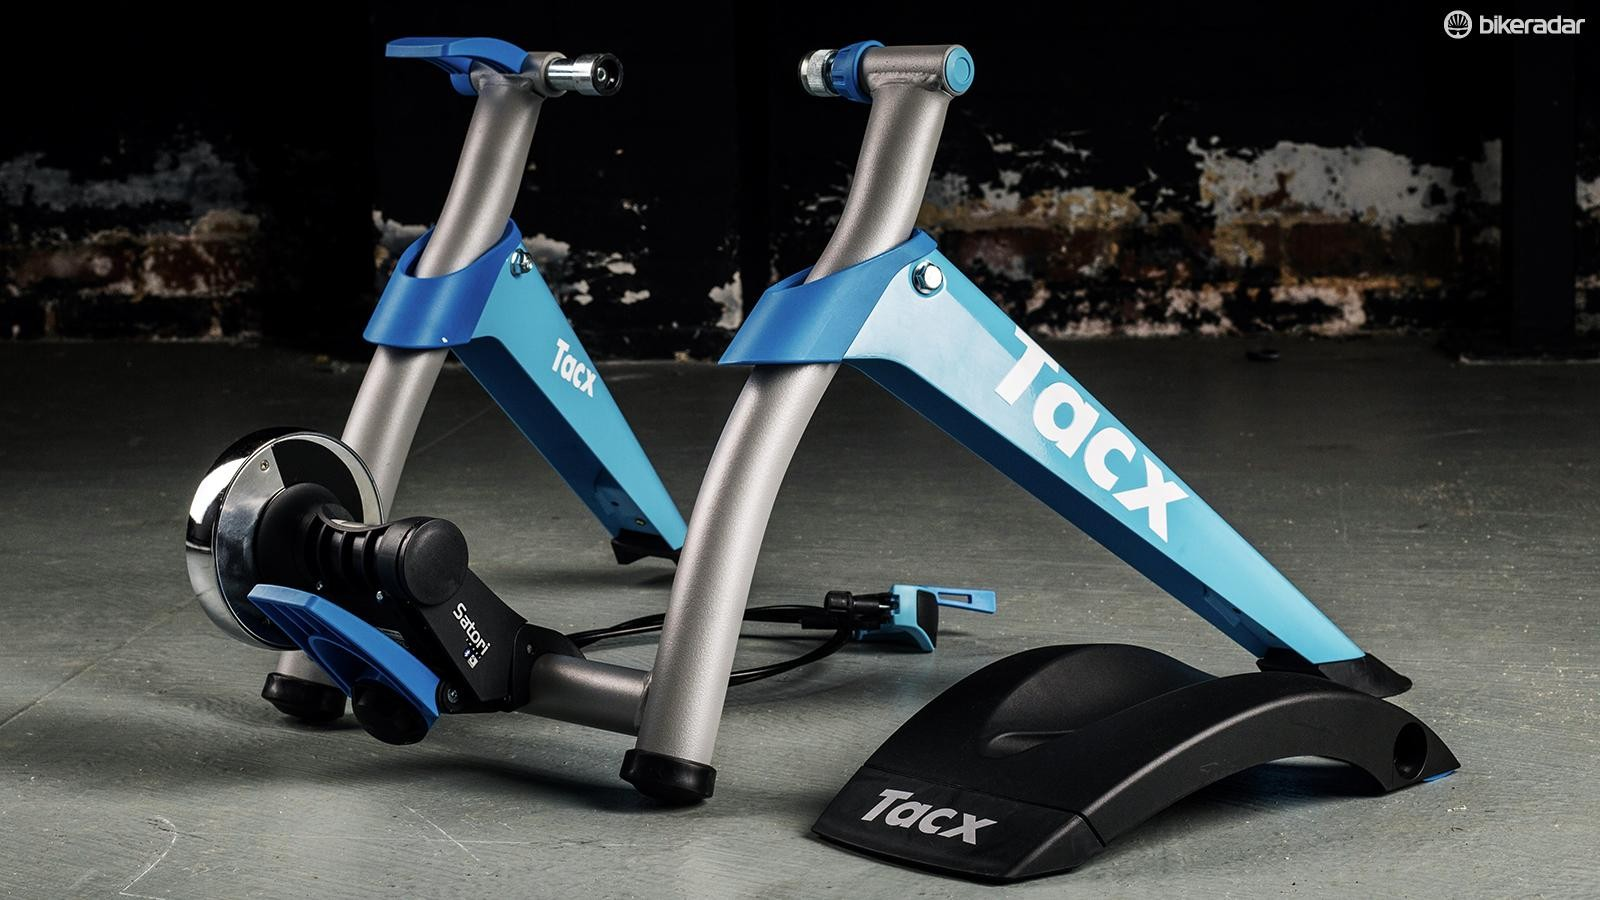 The Tacx Satori is one of the most popular smart trainers on the market